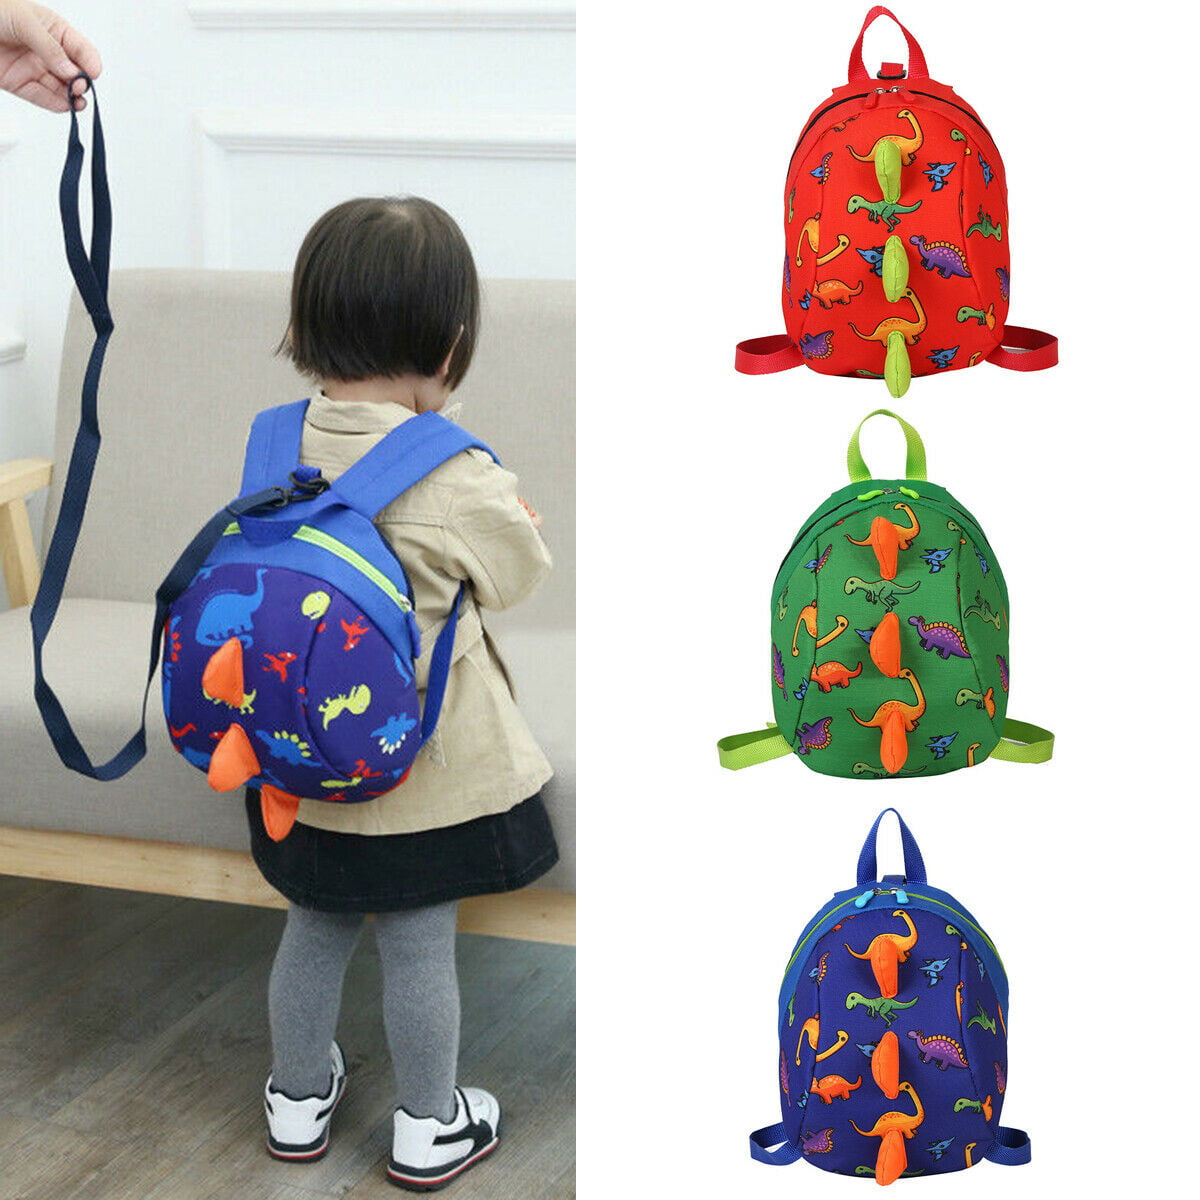 Safety Harness Baby Strap Toddler Walking Backpack Anti Lost Leash Preschool Bag